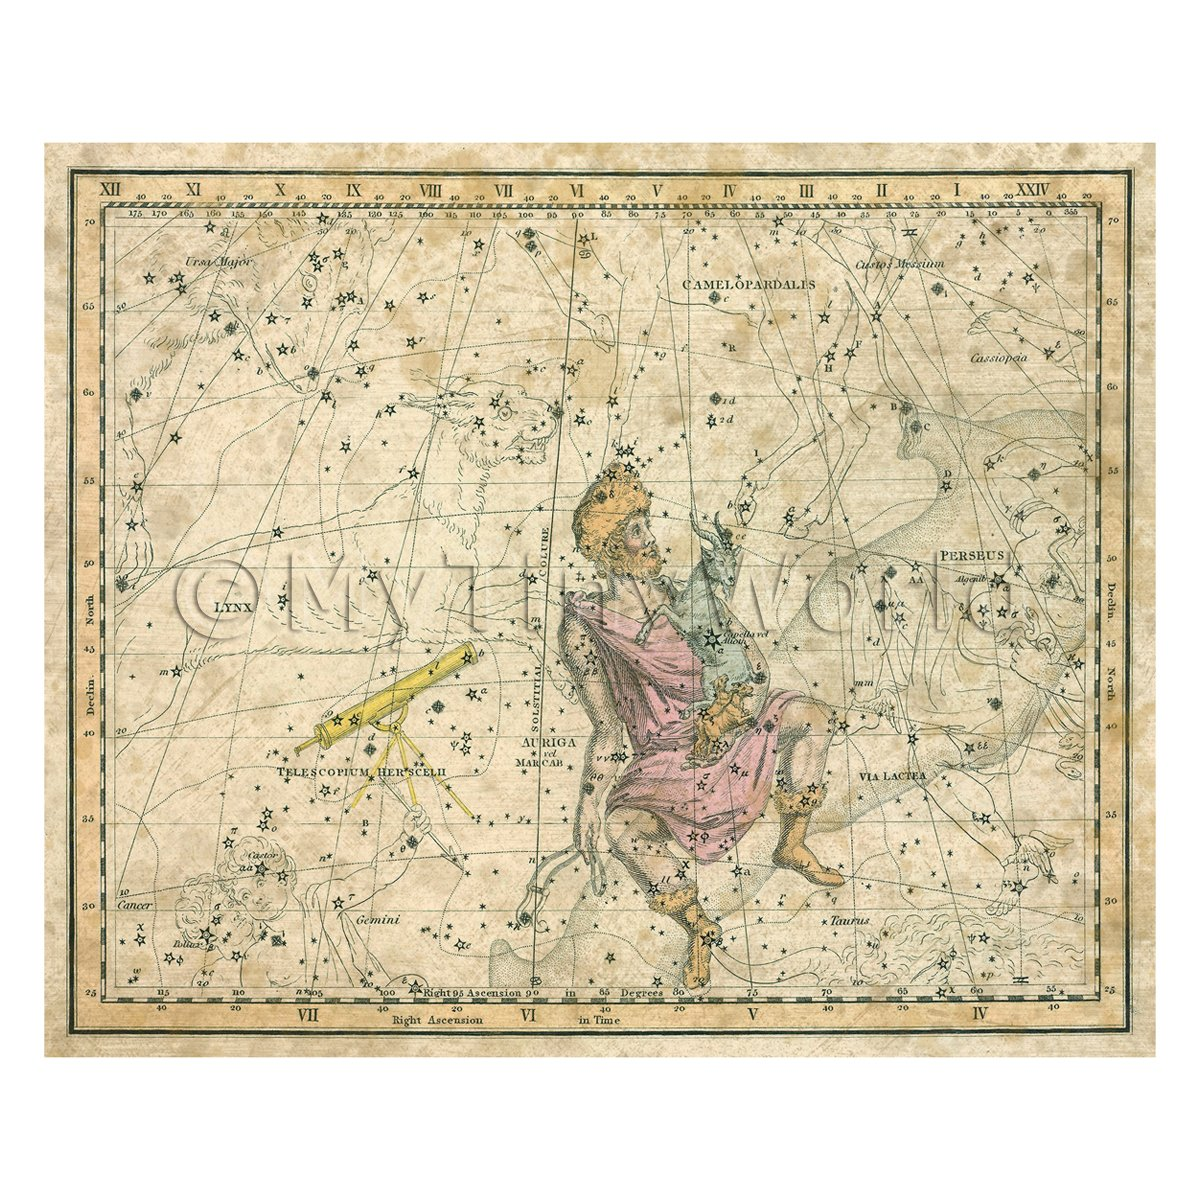 Dolls House Miniature Aged1800s Star Map With Auriga And Lnnx